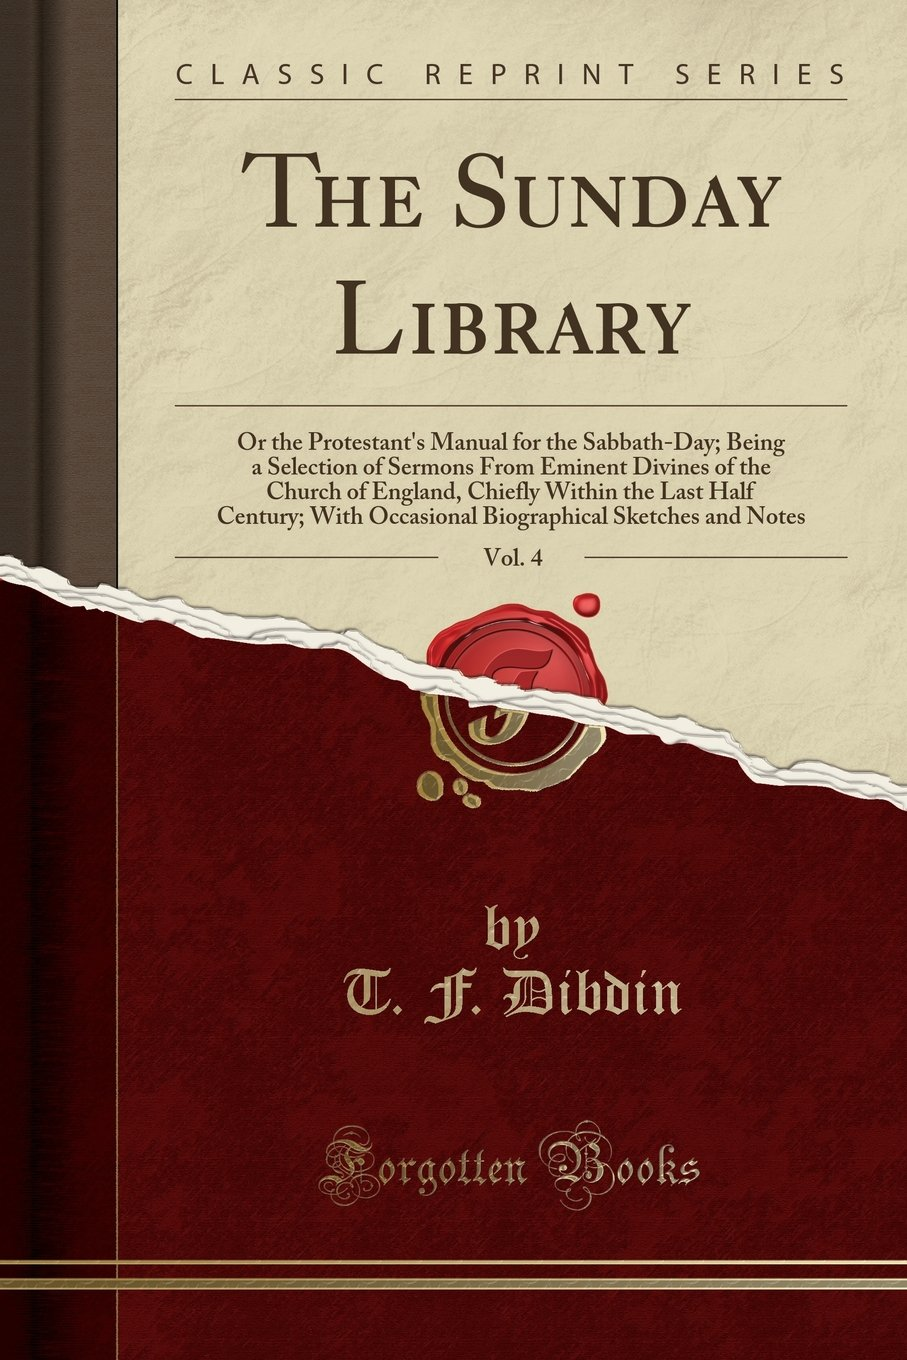 Read Online The Sunday Library, Vol. 4: Or the Protestant's Manual for the Sabbath-Day; Being a Selection of Sermons From Eminent Divines of the Church of ... Occasional Biographical Sketches and Notes pdf